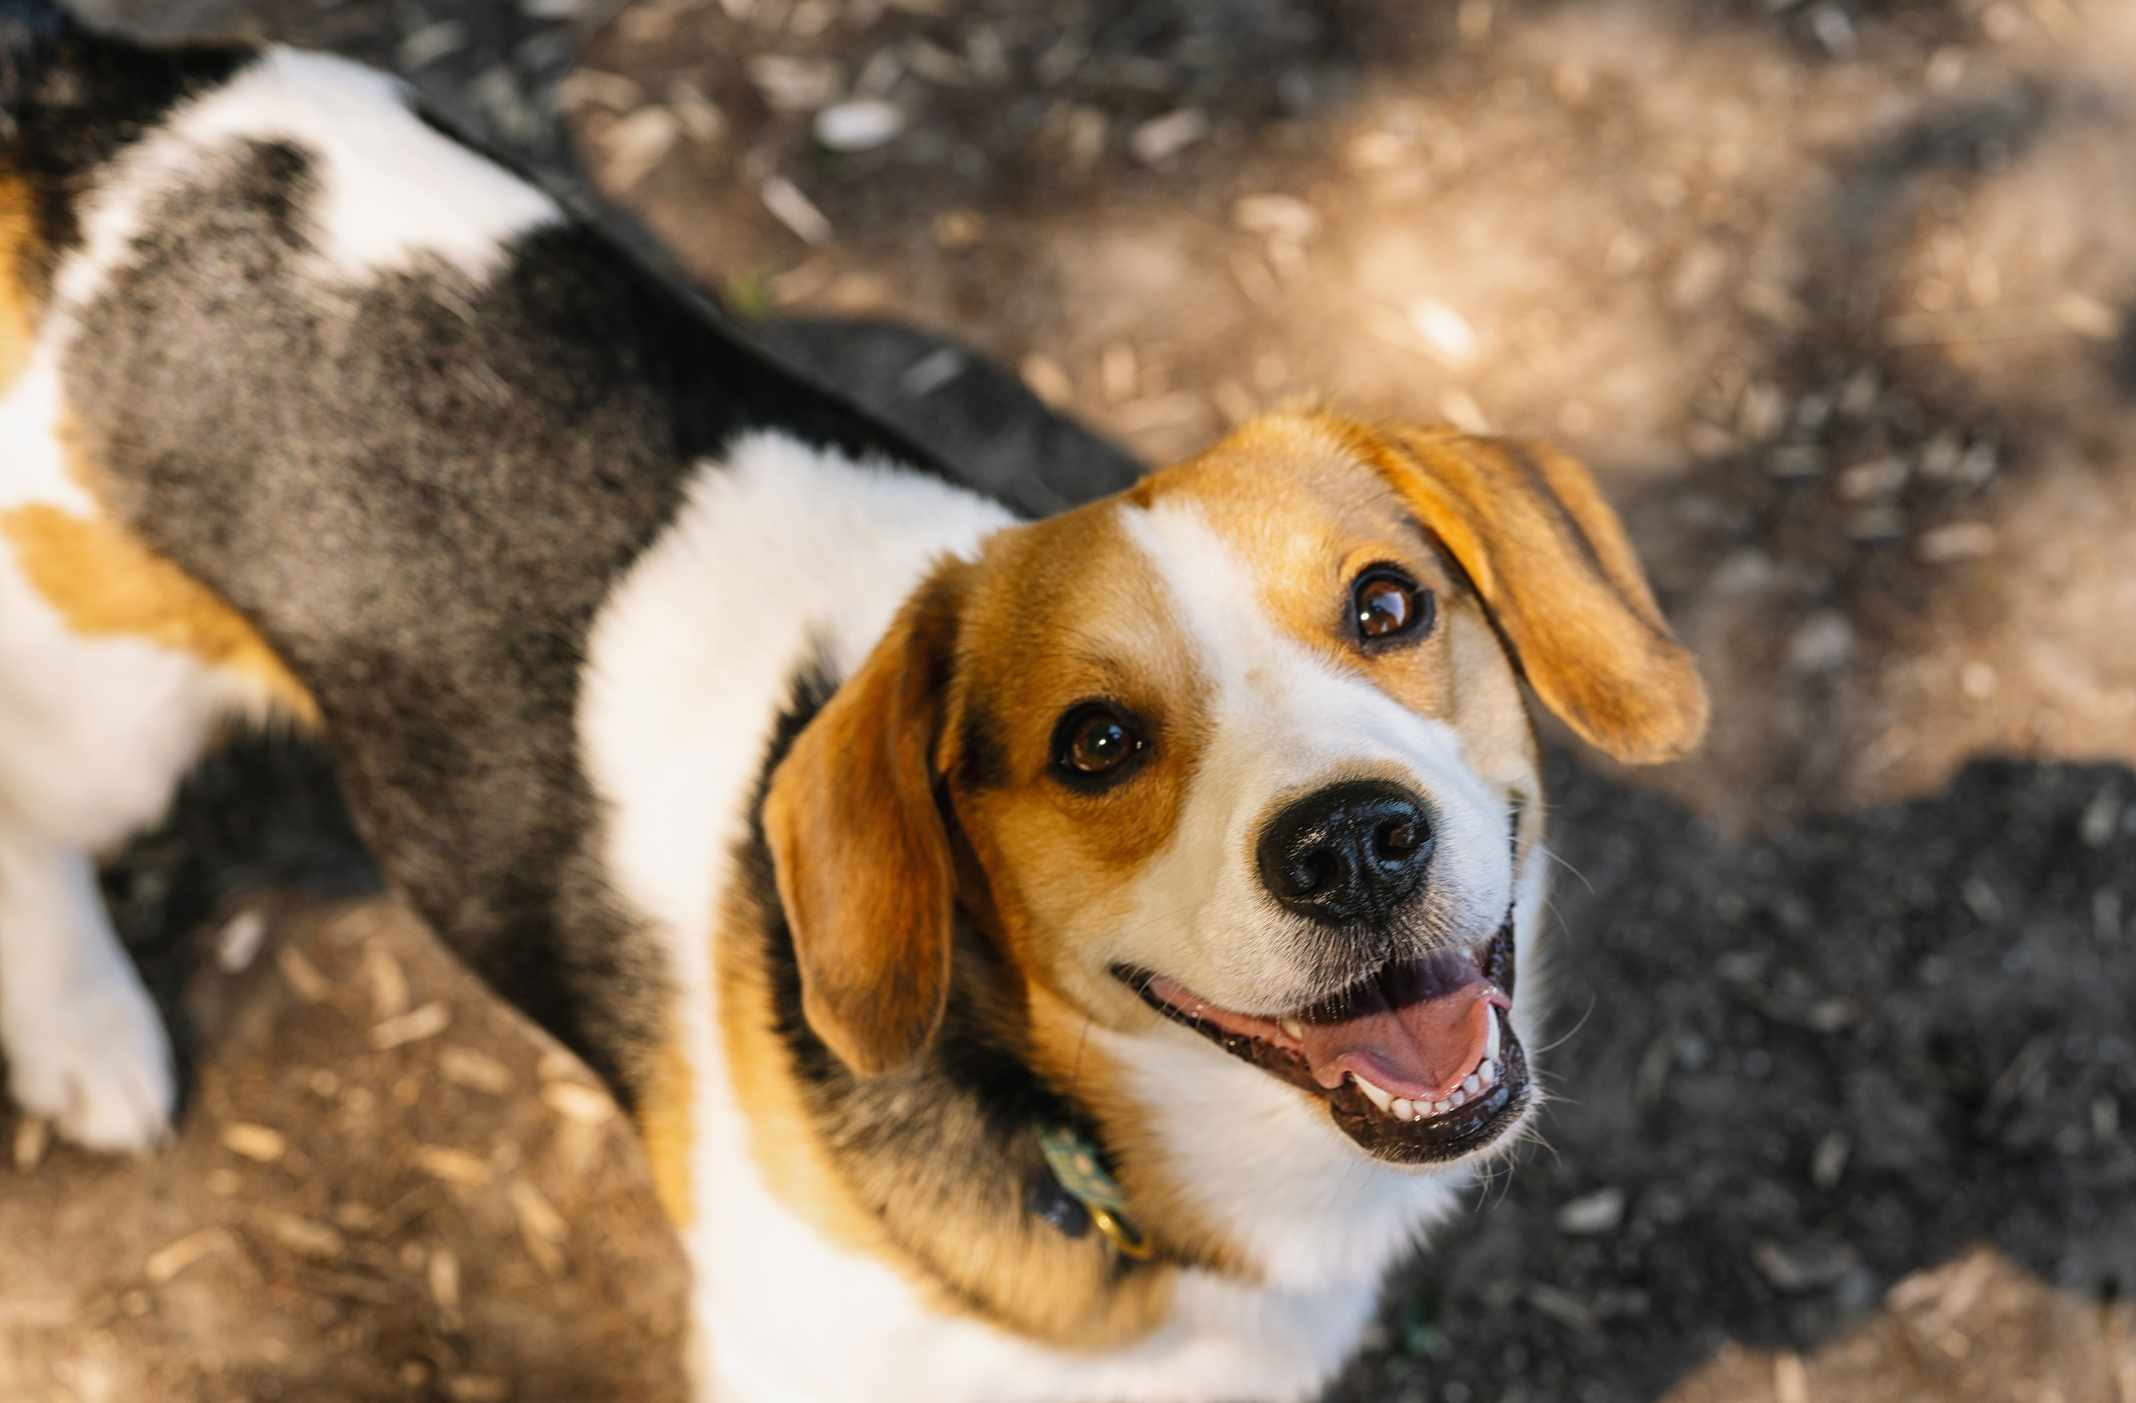 A Beagle smiling at the camera.